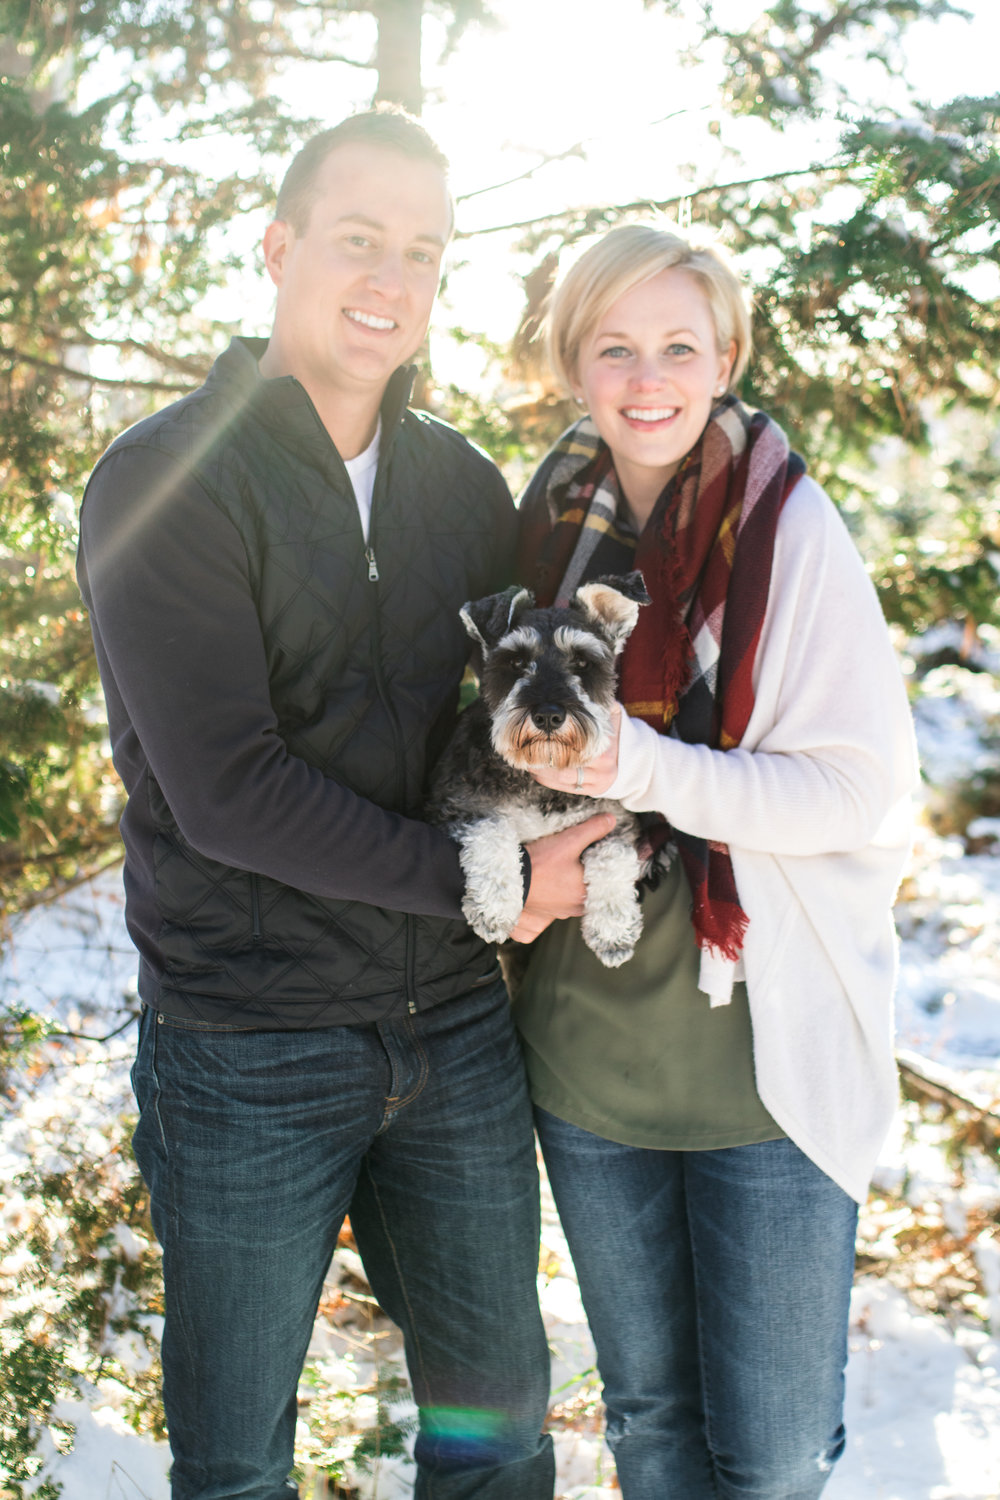 Nielsen Mini Session - Hansen Tree Farm -Sabrina Reis Photography - Minneapolis -12.jpg